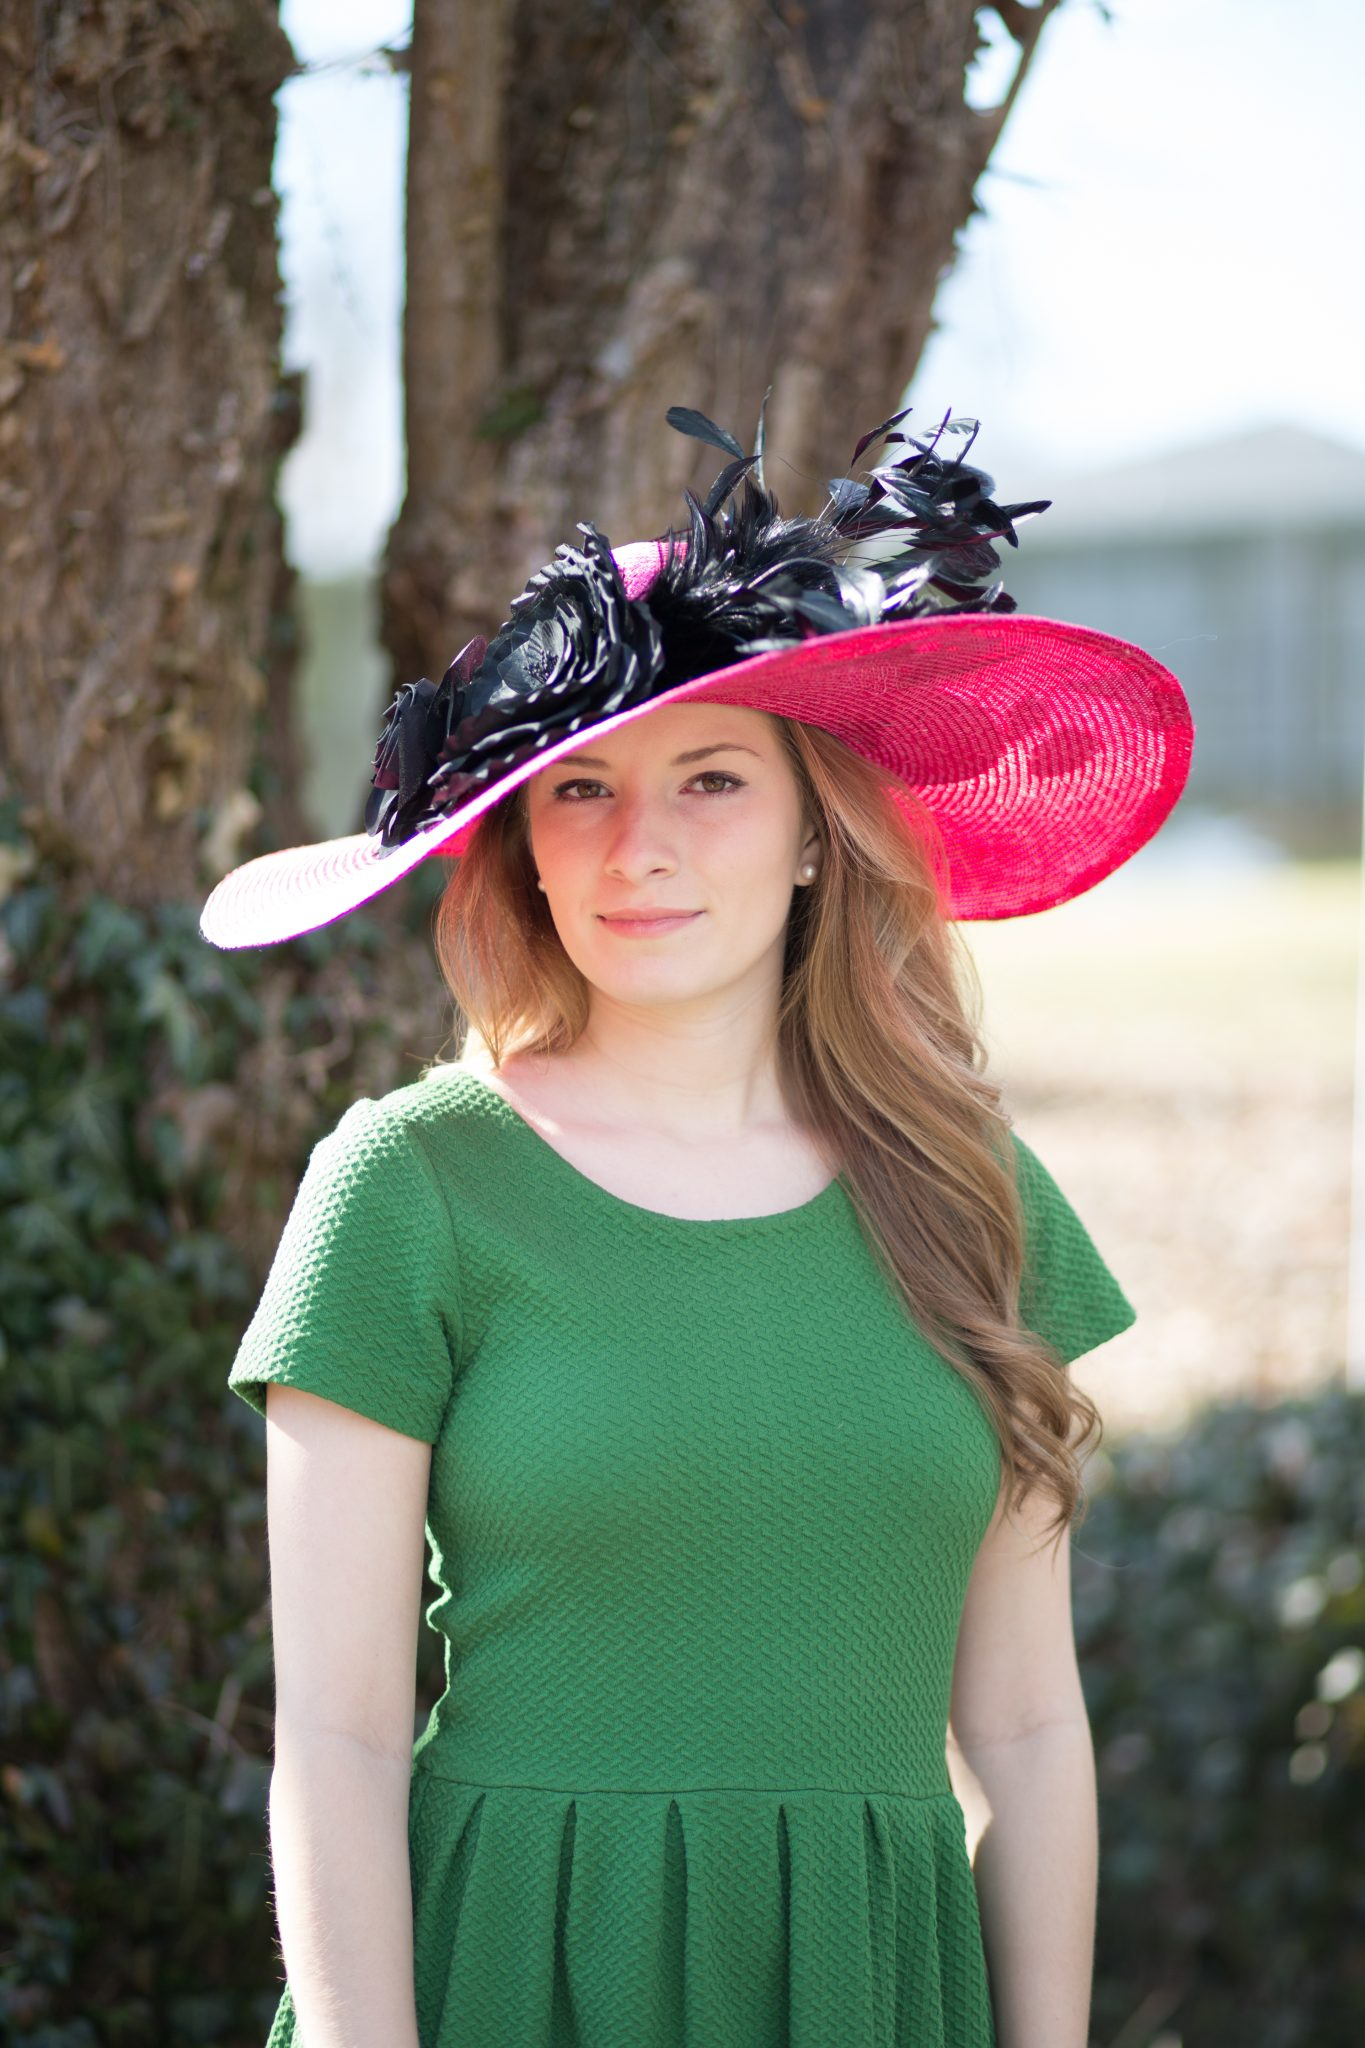 chloe – spring summer, kentucky derby, oaks